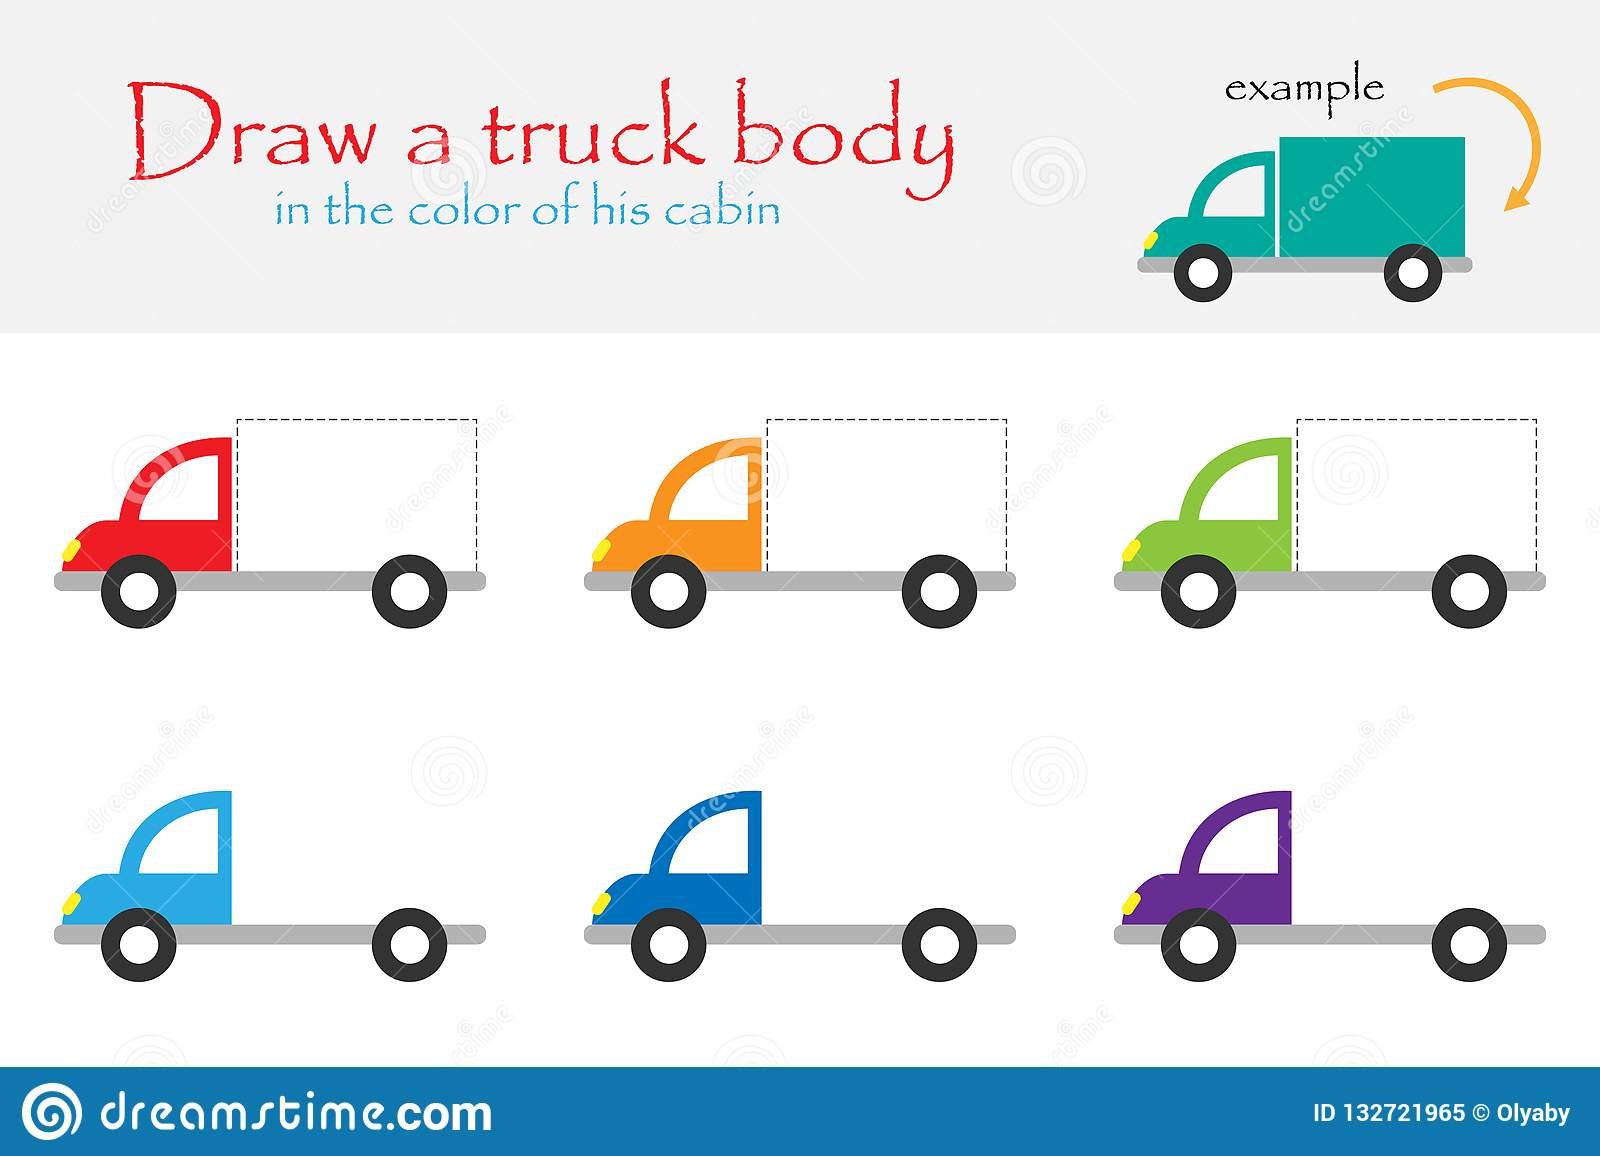 Draw A Truck Body In The Color Of His Cabin For Children